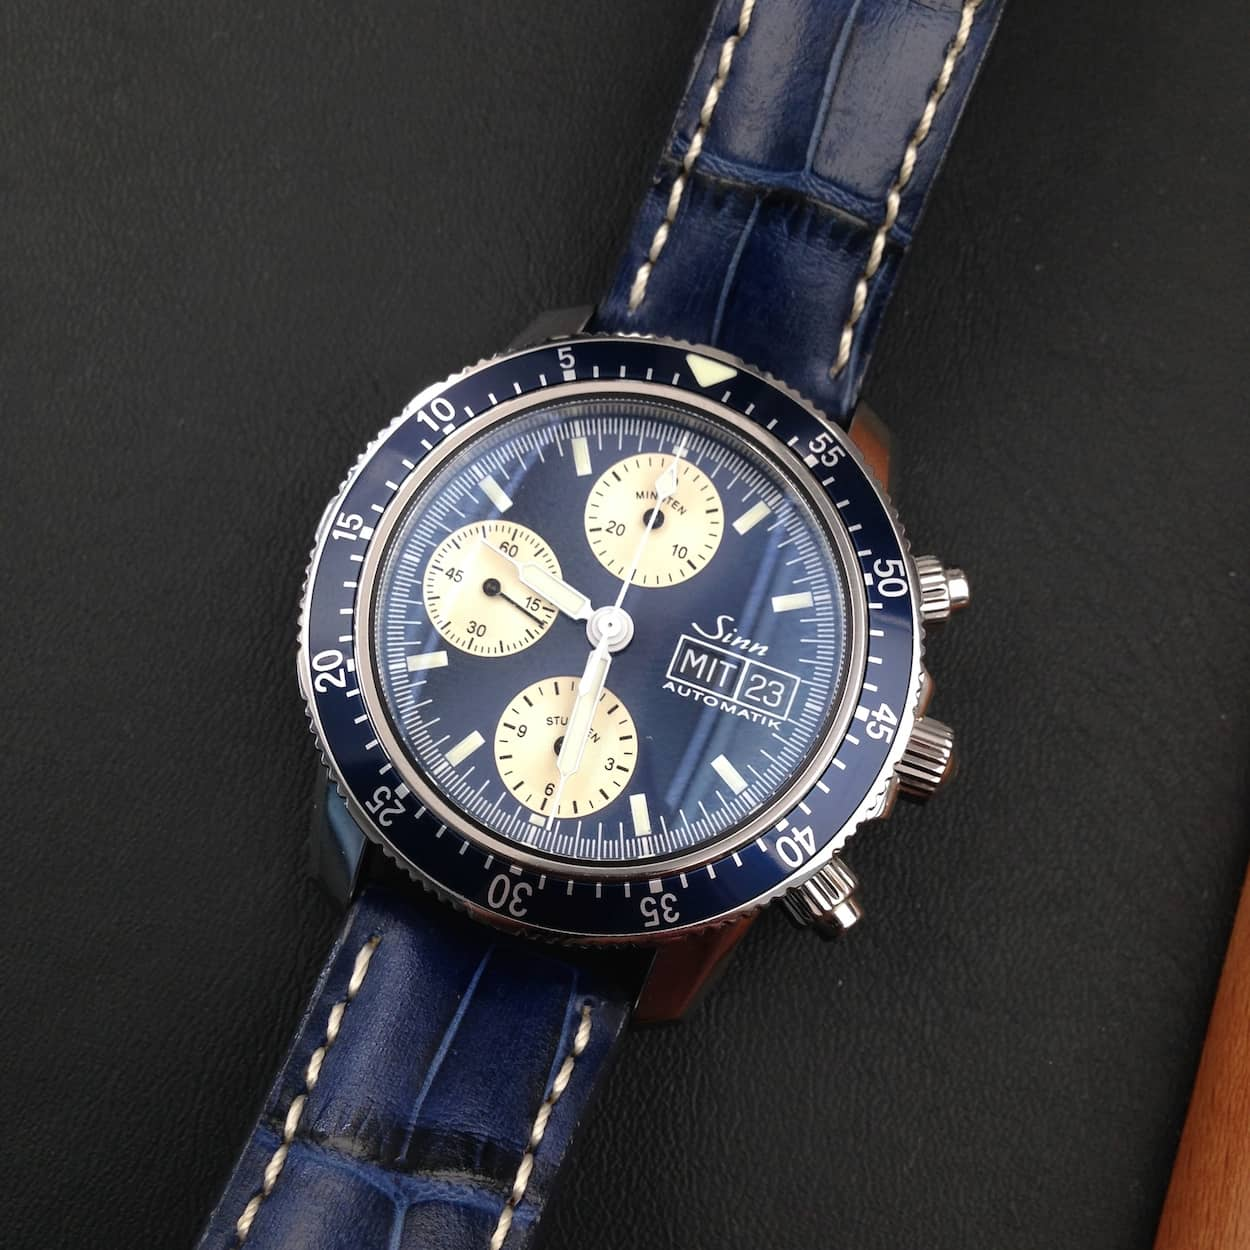 Sinn 103 in blue strap